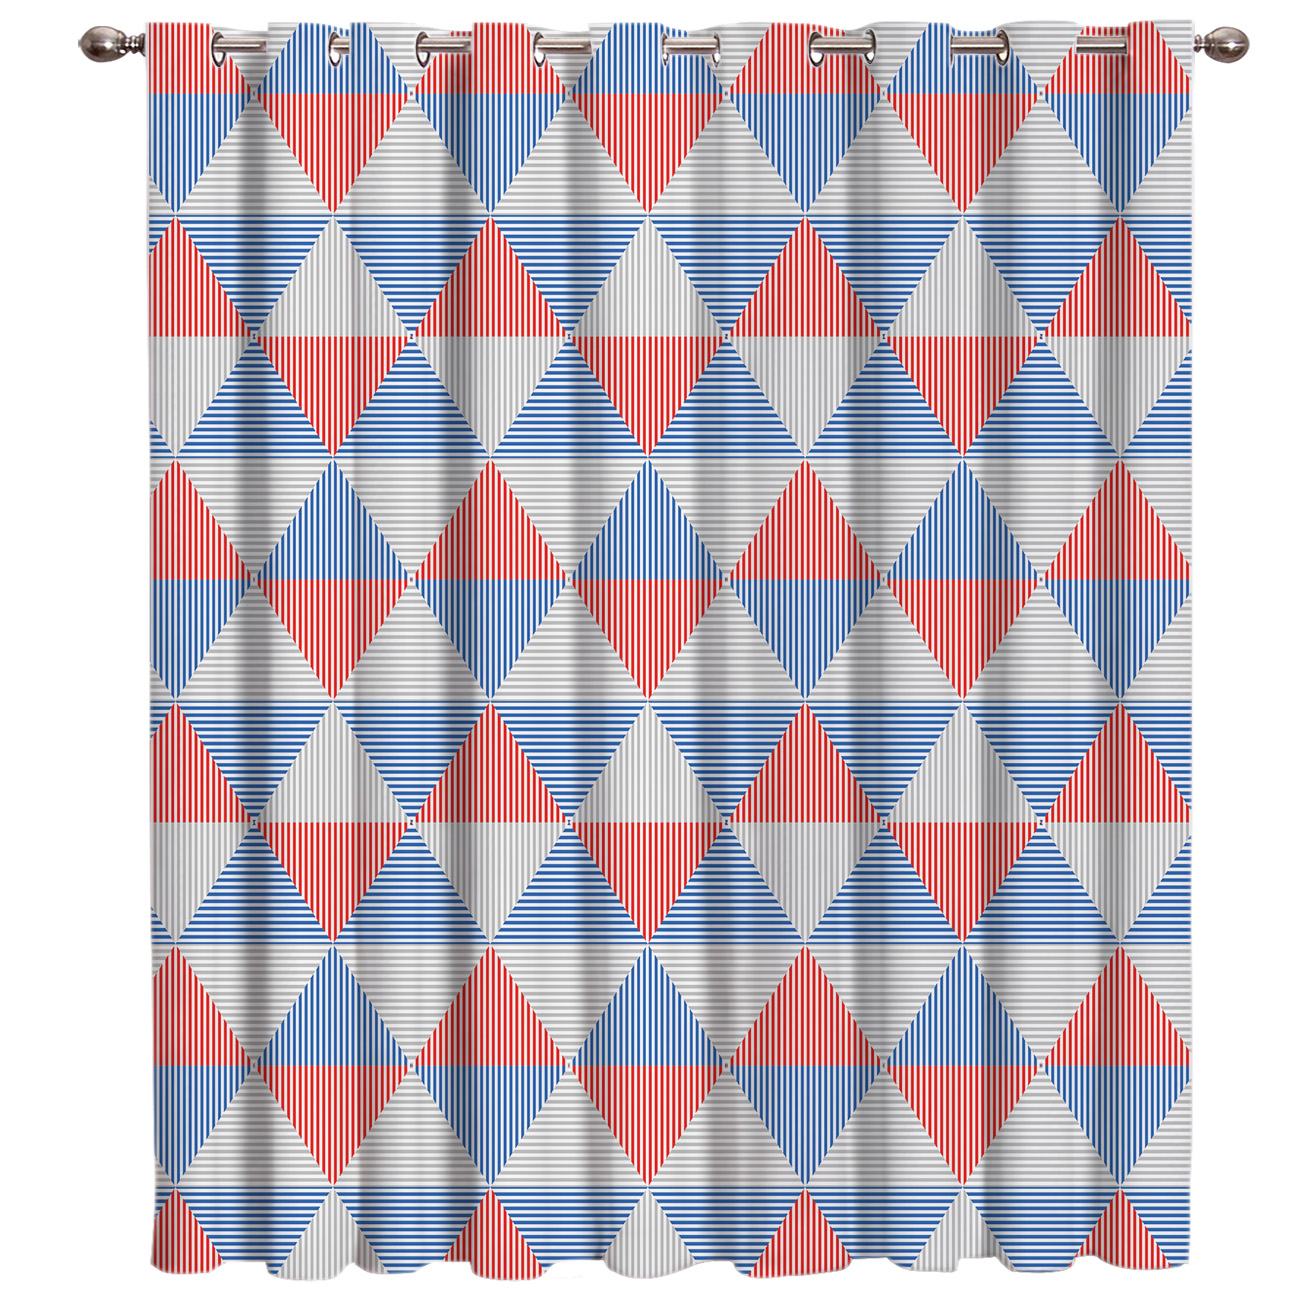 Geometric Red-Blue Triangle Mosaic Pattern Curtains Bedroom Kitchen Drapes Indoor Fabric Kids Swag Curtain Panels With Grommets